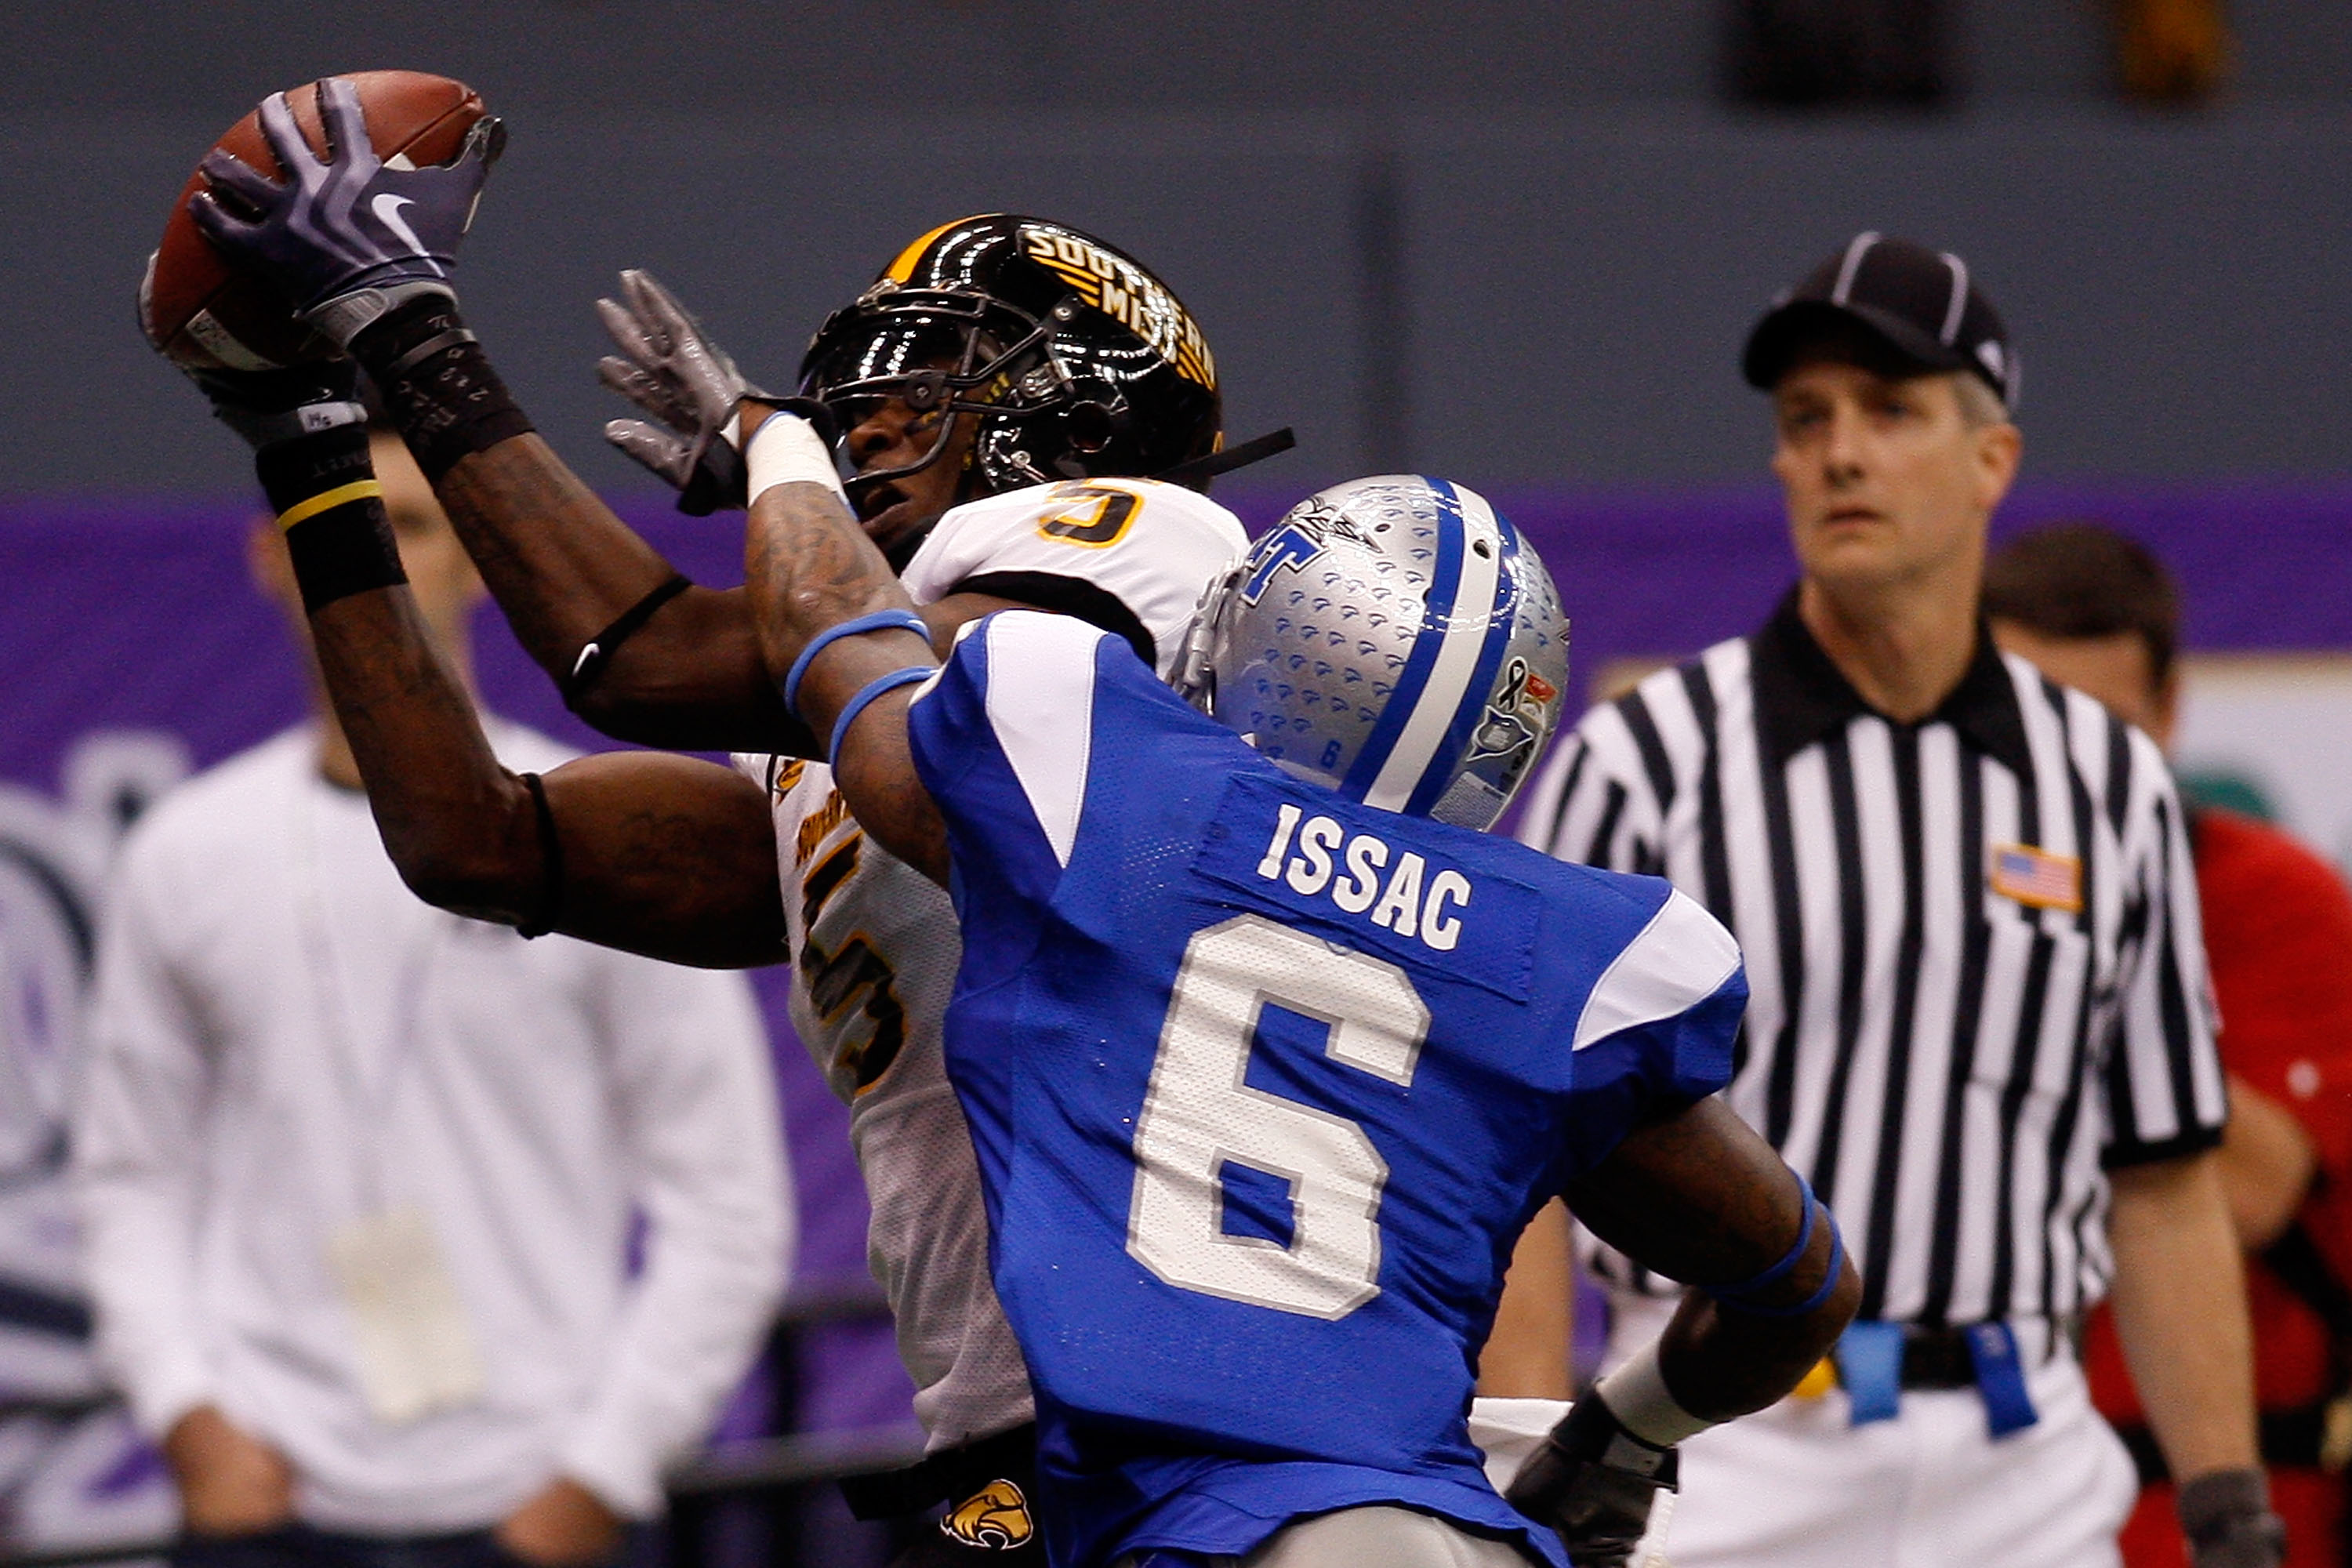 NEW ORLEANS - DECEMBER 20:  DeAndre Brown #5 of the Southern Miss Golden Eagles catches a touchdown pass over Rod Issac #6 of the Middle Tennessee Blue Raiders during the R+L Carriers New Orleans Bowl at the Louisiana Superdome on December 20, 2009 in New